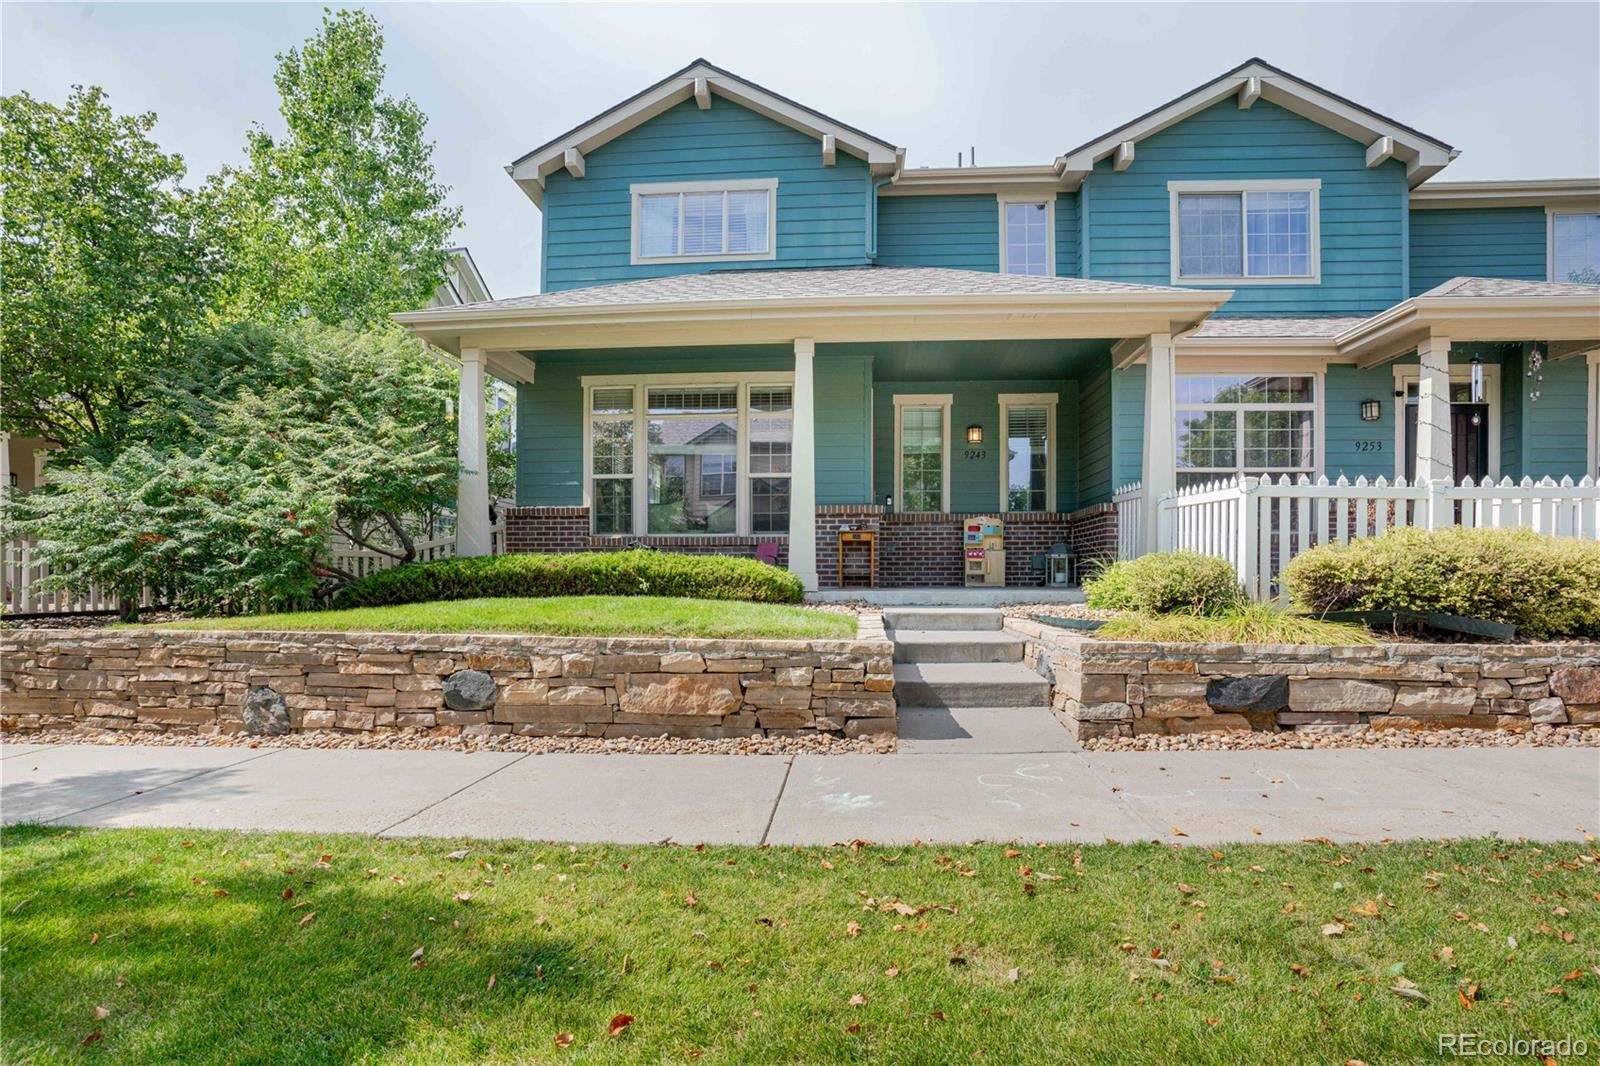 9243 W 107th Place, Westminster, CO 80021 - MLS#: 5585566